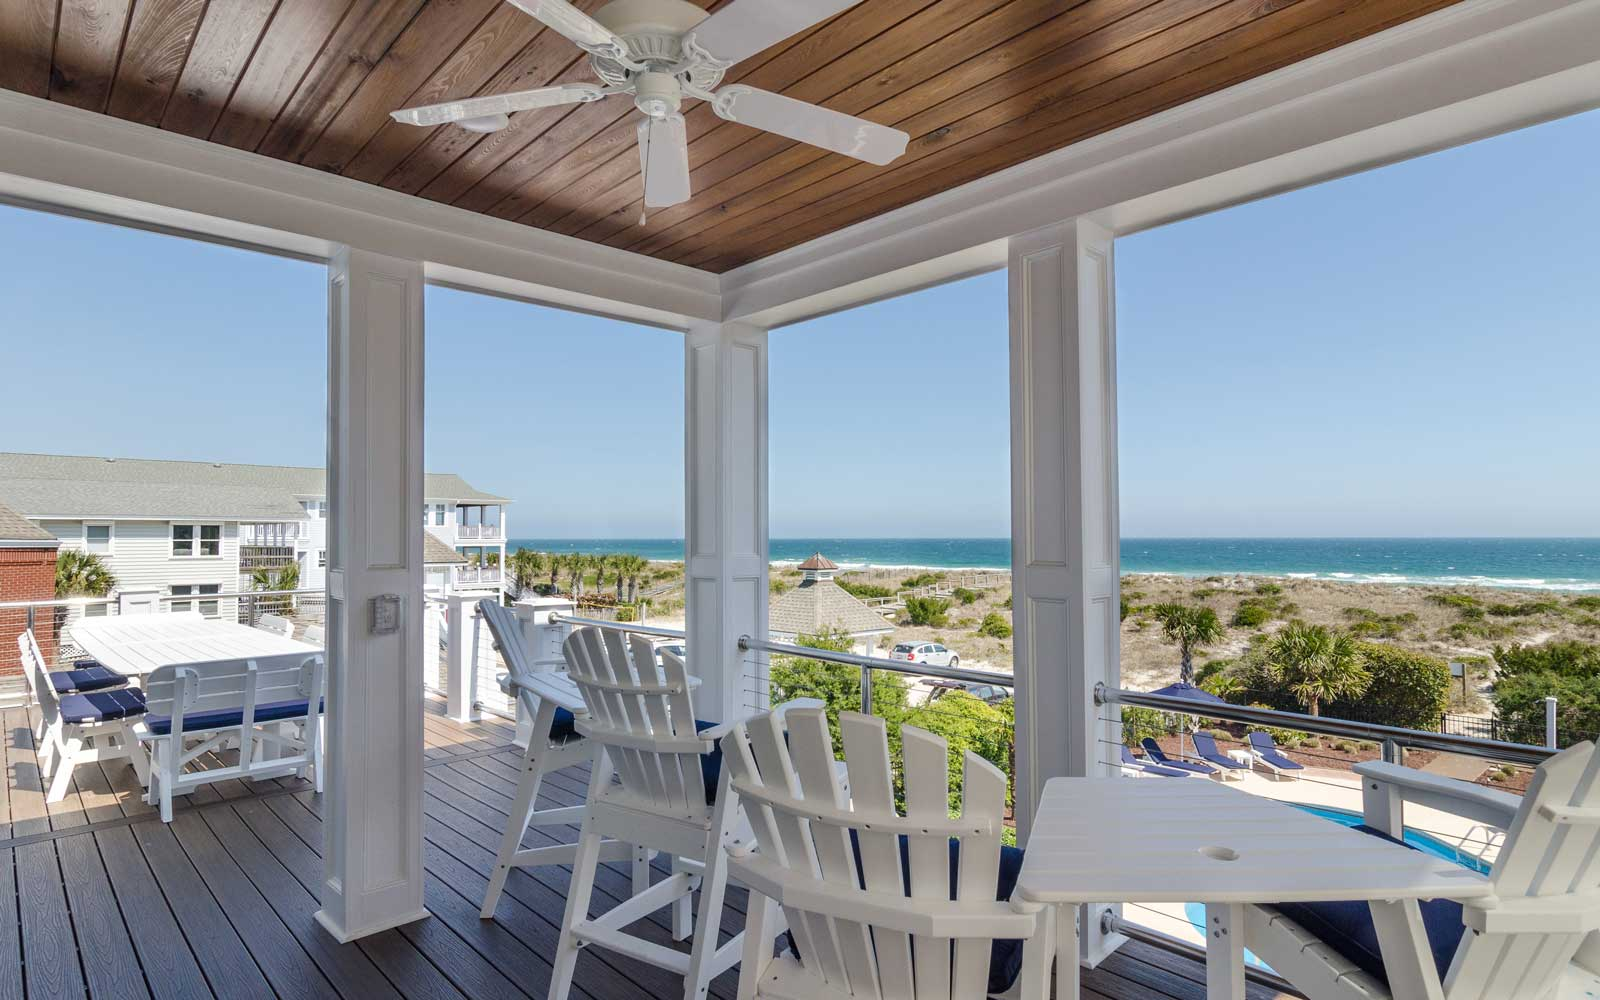 Airbnb Wrightsville for best New Years Eve Trip